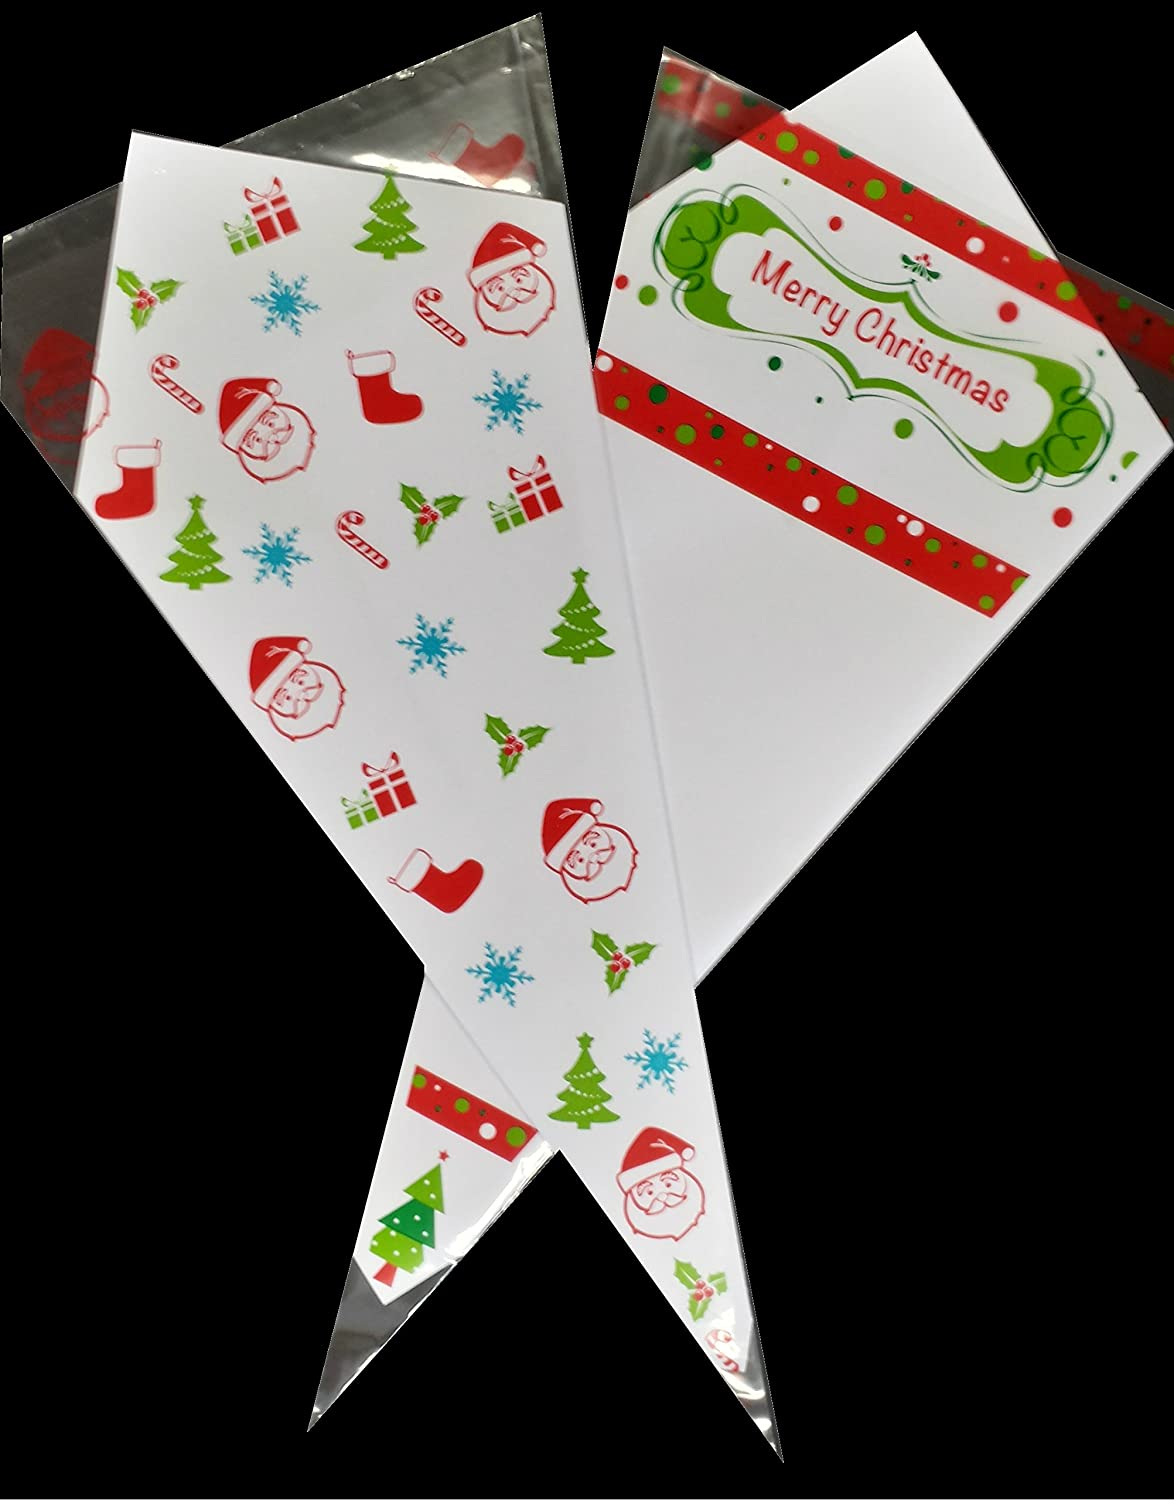 10 Mixed Santa & Christmas Patterned Coloured Cello Cone Party Bags - Packed by the CandyRushTM Charity - (18x37cm) Xmas Holiday Kids Cellophane Gift Bag for Candy Sweets & Treats Acceptable Enterprises Larne